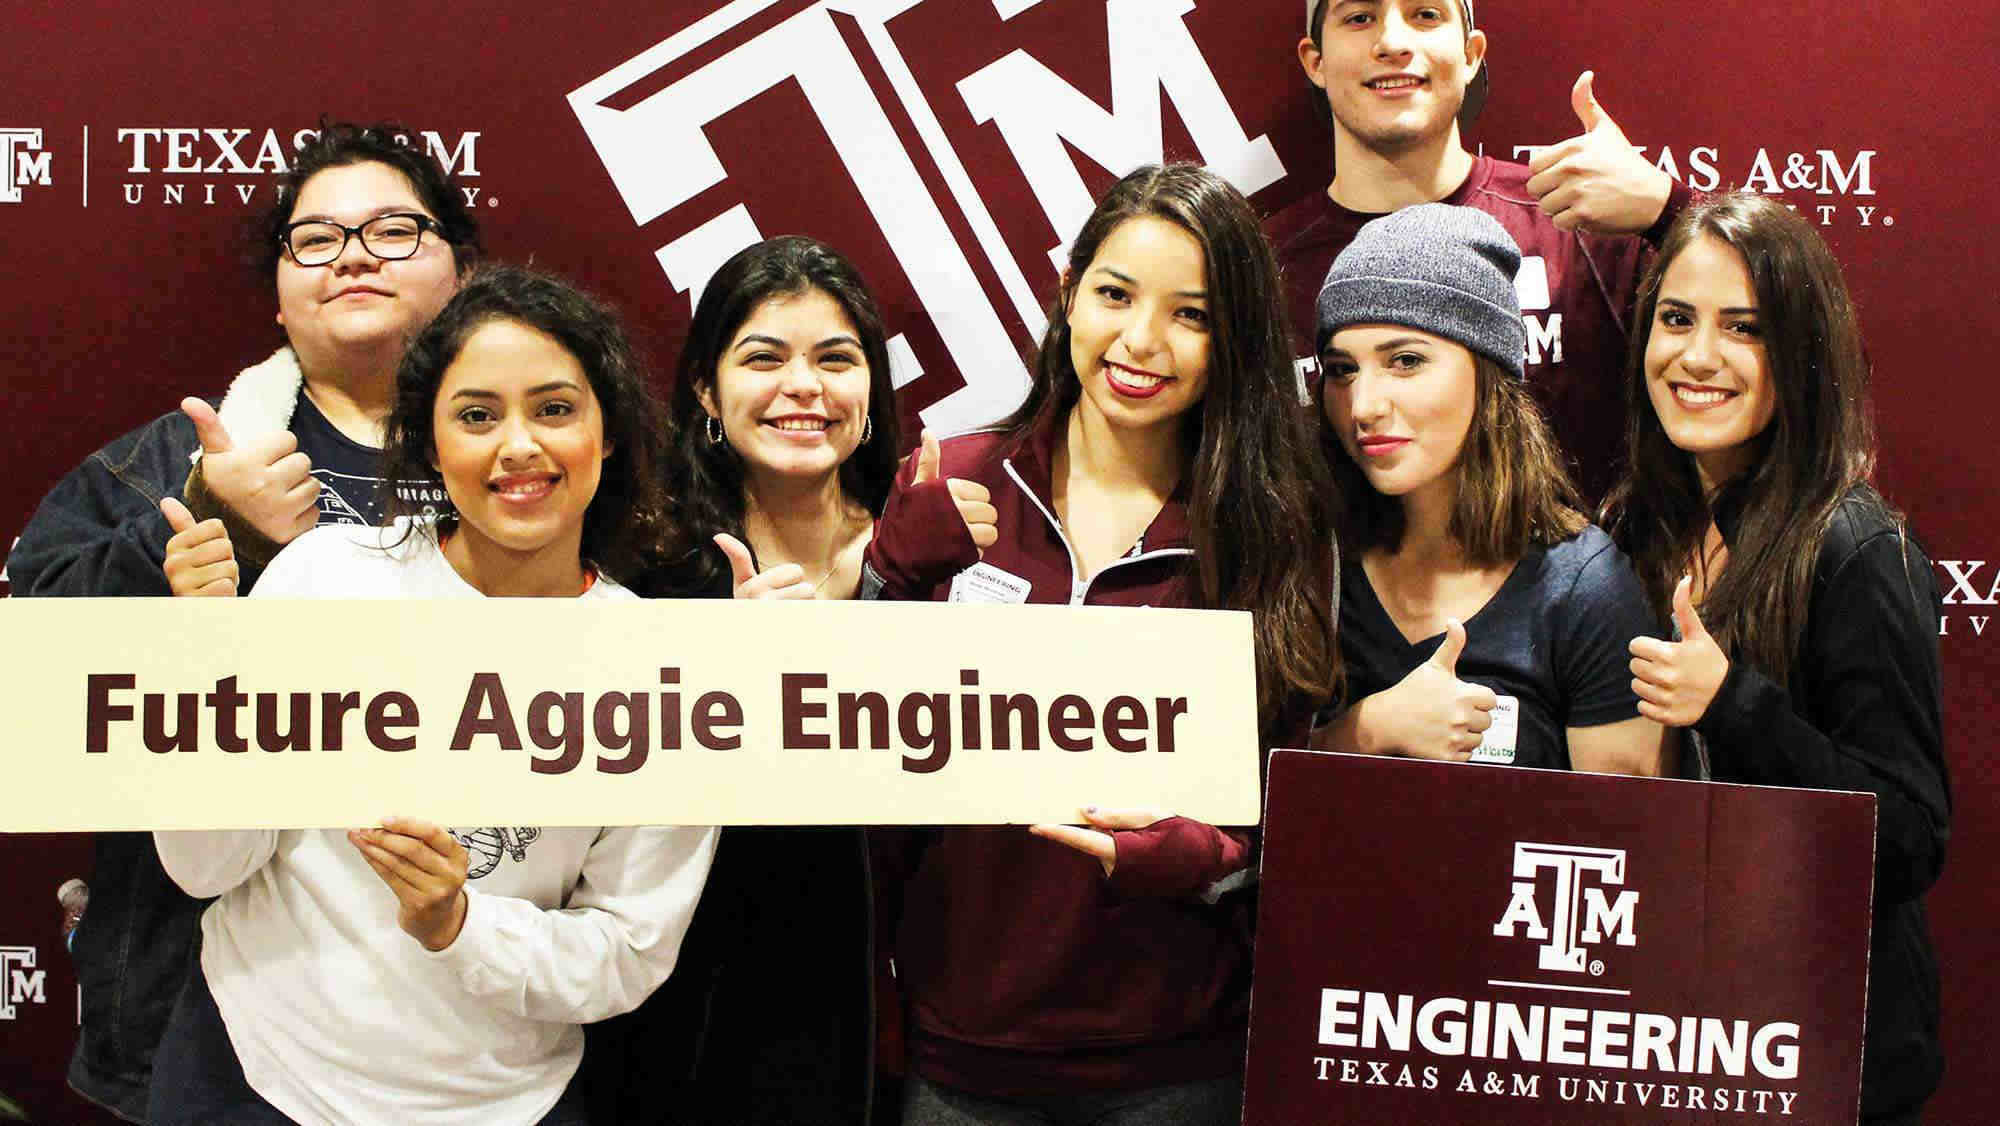 Texas A&M University in the background with seven students with their thumbs up holding a sign that says Future Aggie Engineers and Engineering Texas A&M University